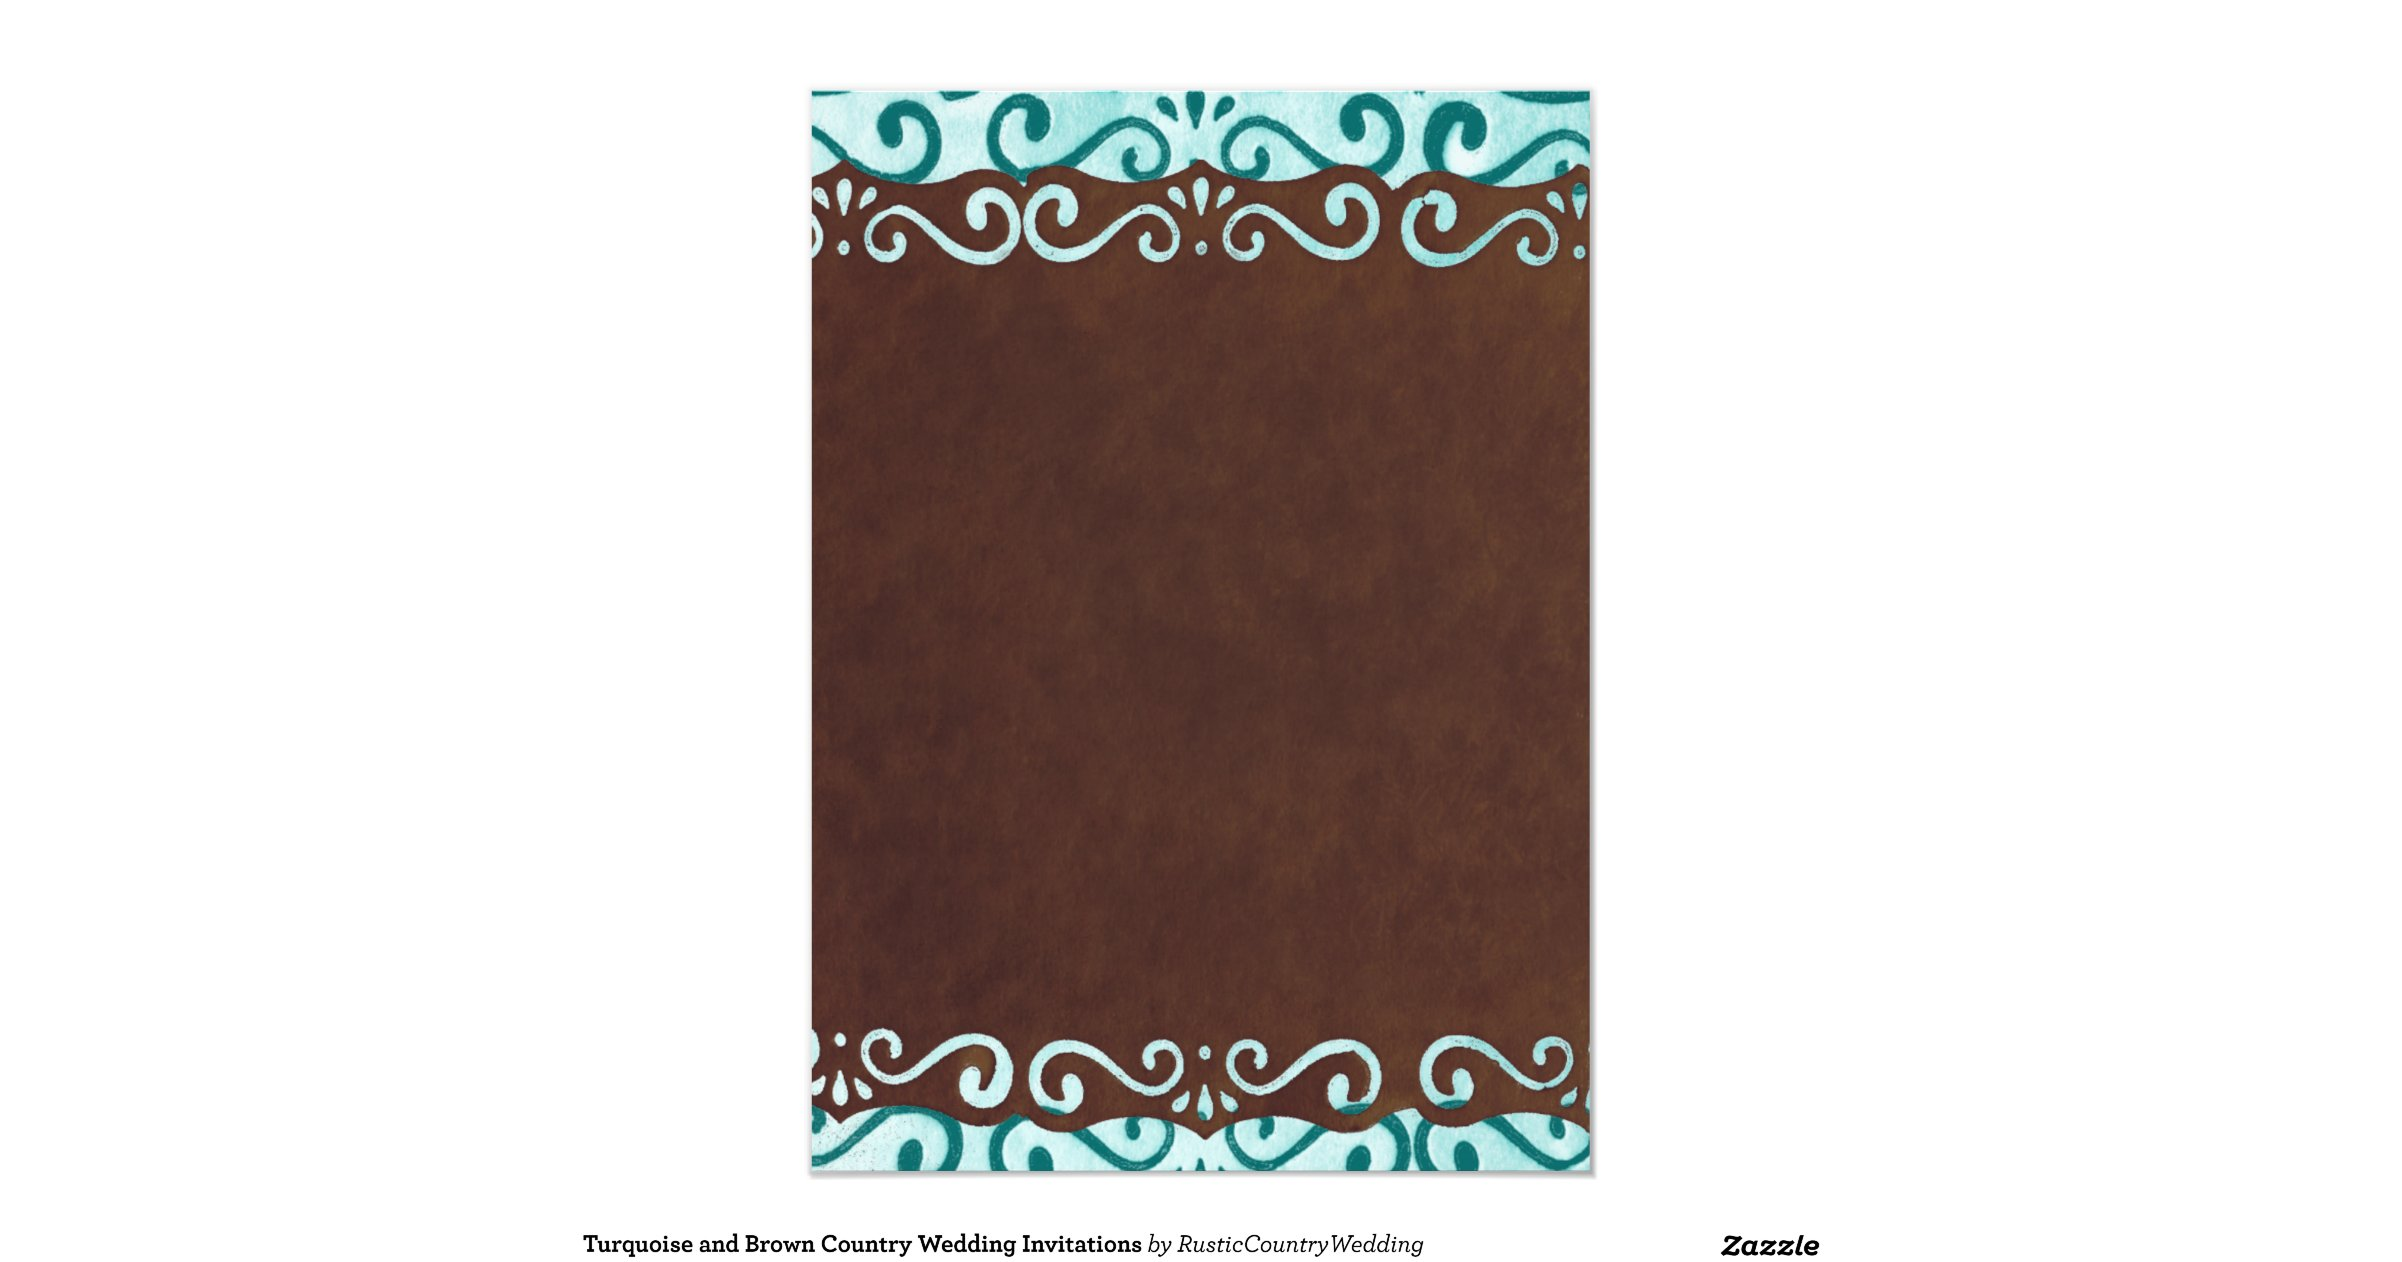 Turquoise And Brown Wedding Invitations: Turquoise_and_brown_country_wedding_invitations